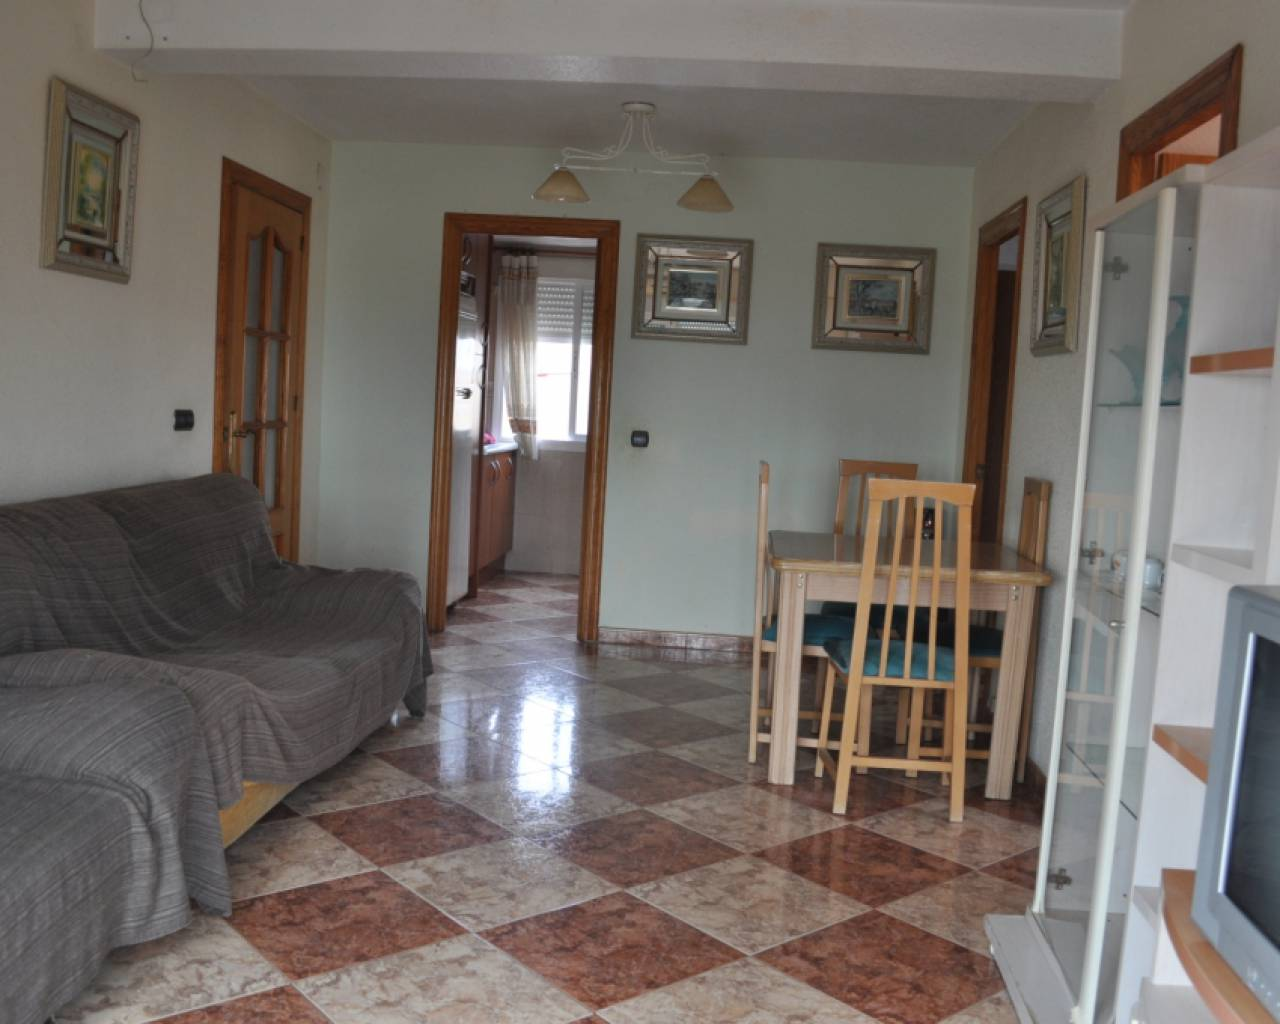 Venta - Apartment / Flat - Villajoyosa - Poble Nou